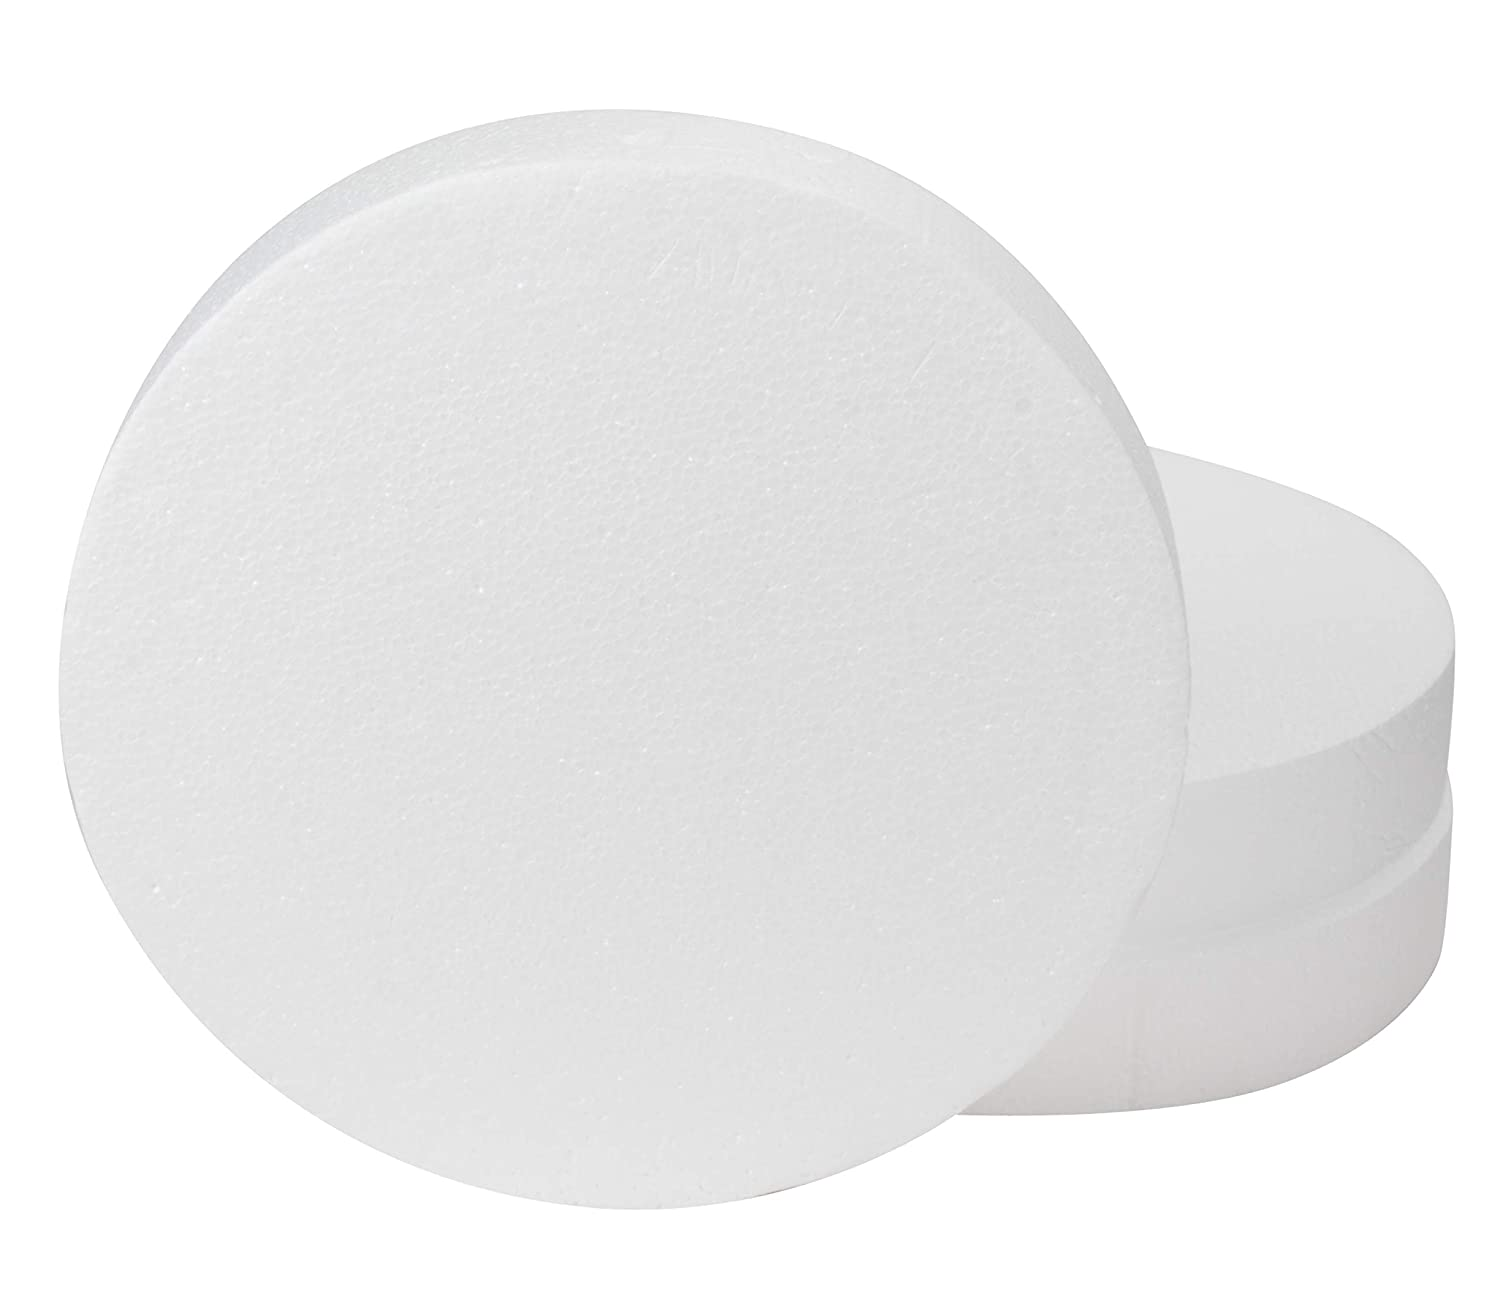 Craft Foam Circle - 9-Pack Polystyrene Foam Disc, Round Foam for Sculpture, Modeling, DIY Arts and Crafts, Kids Class, Floral Arrangement, White, 4 x 4 x 2 Inches Juvale